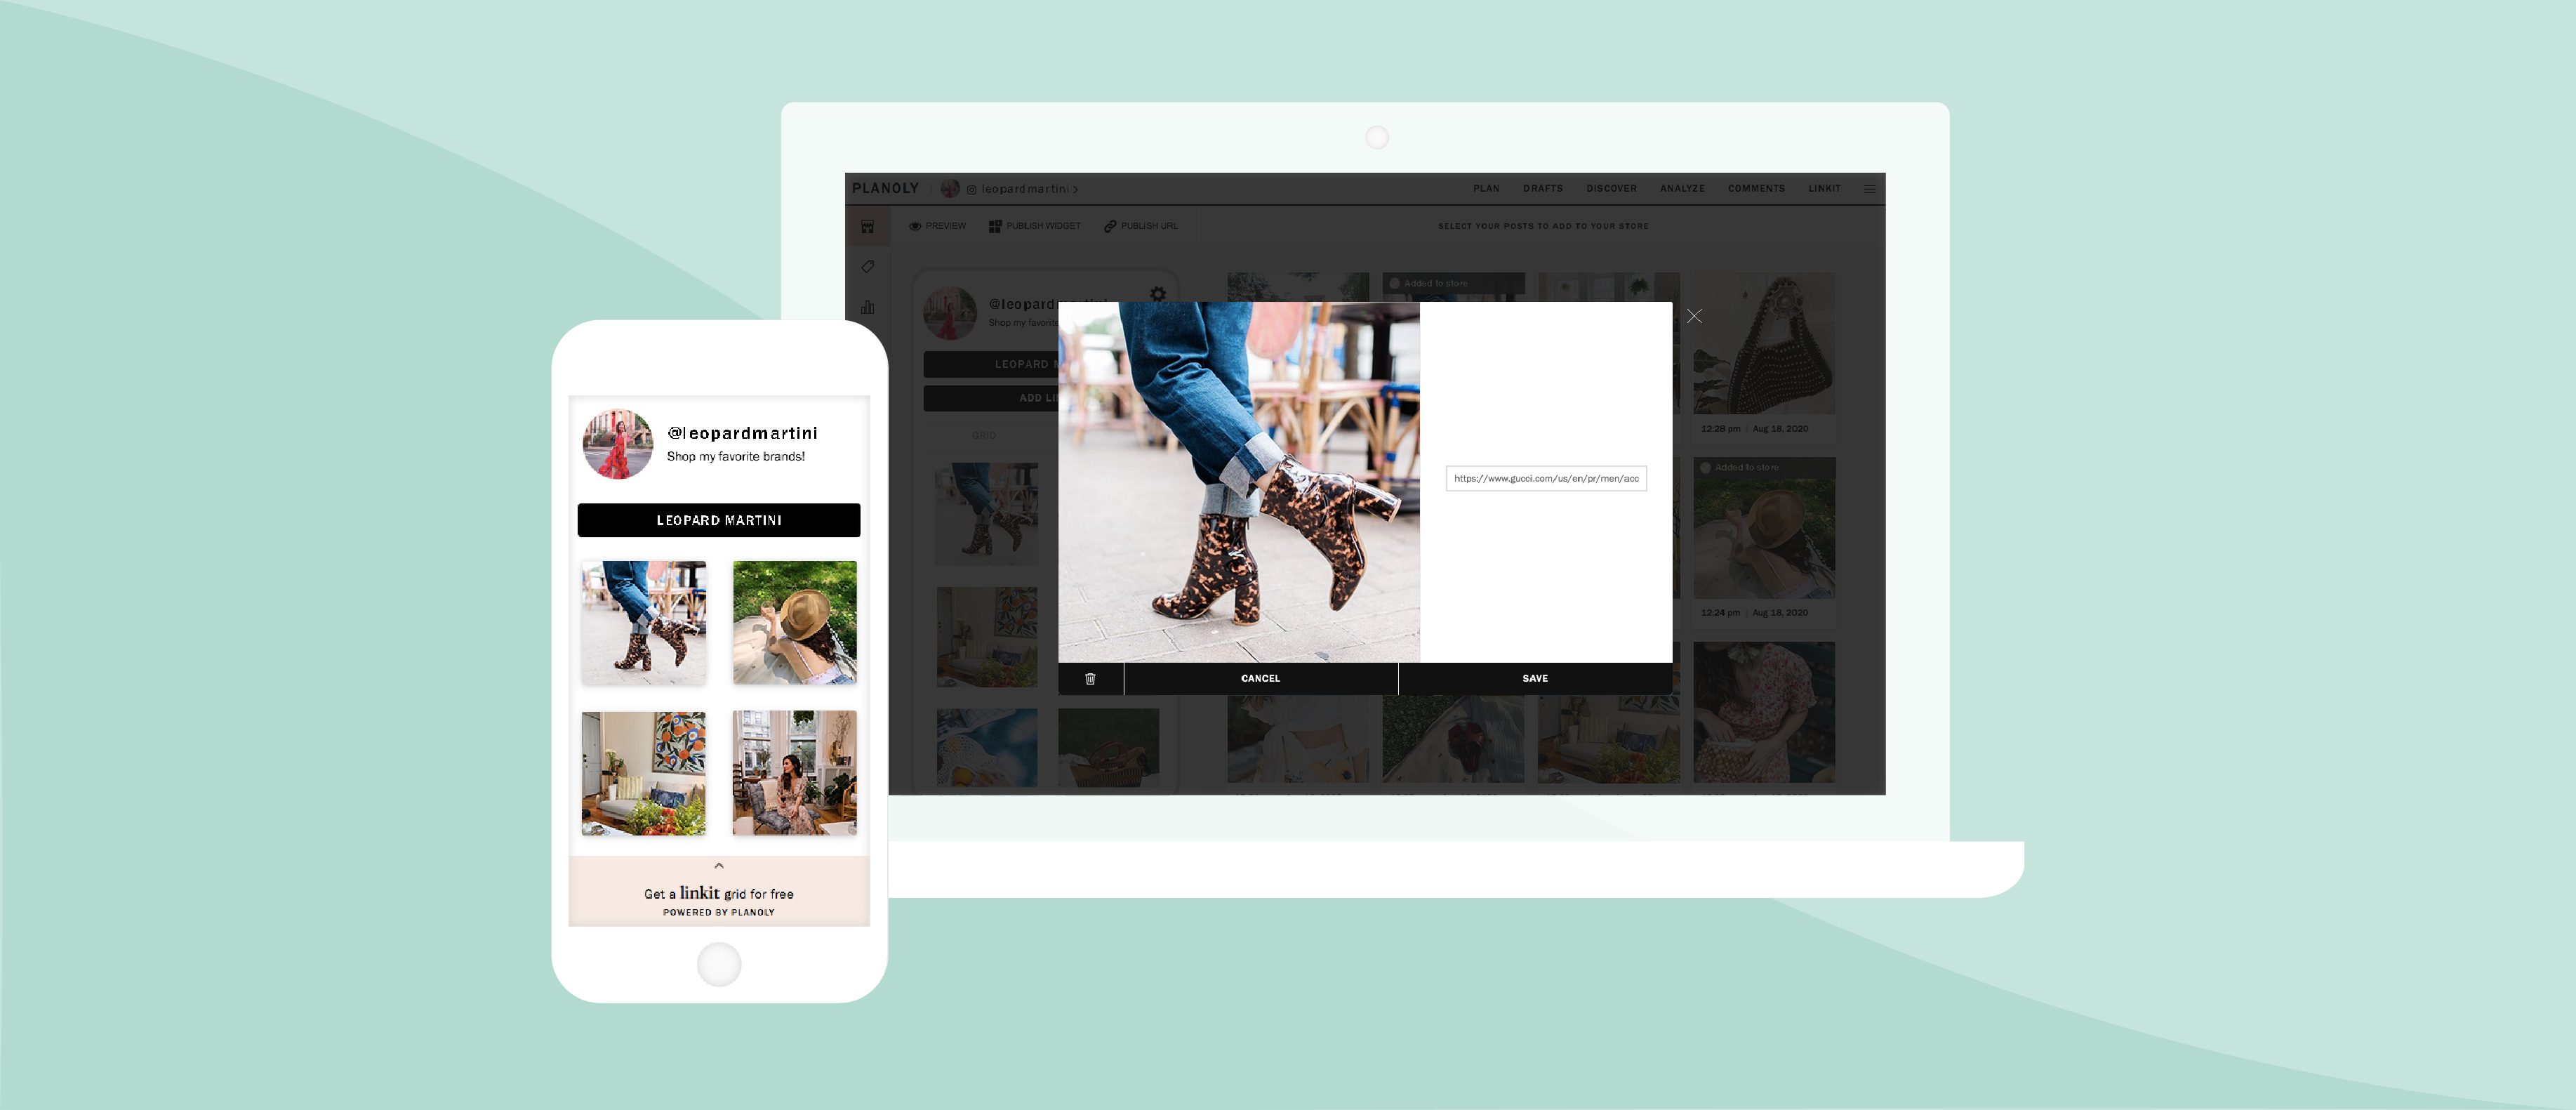 Introducing PLANOLY's Linkit Feature: The Bridge Between Influencers and Brands, by planoly